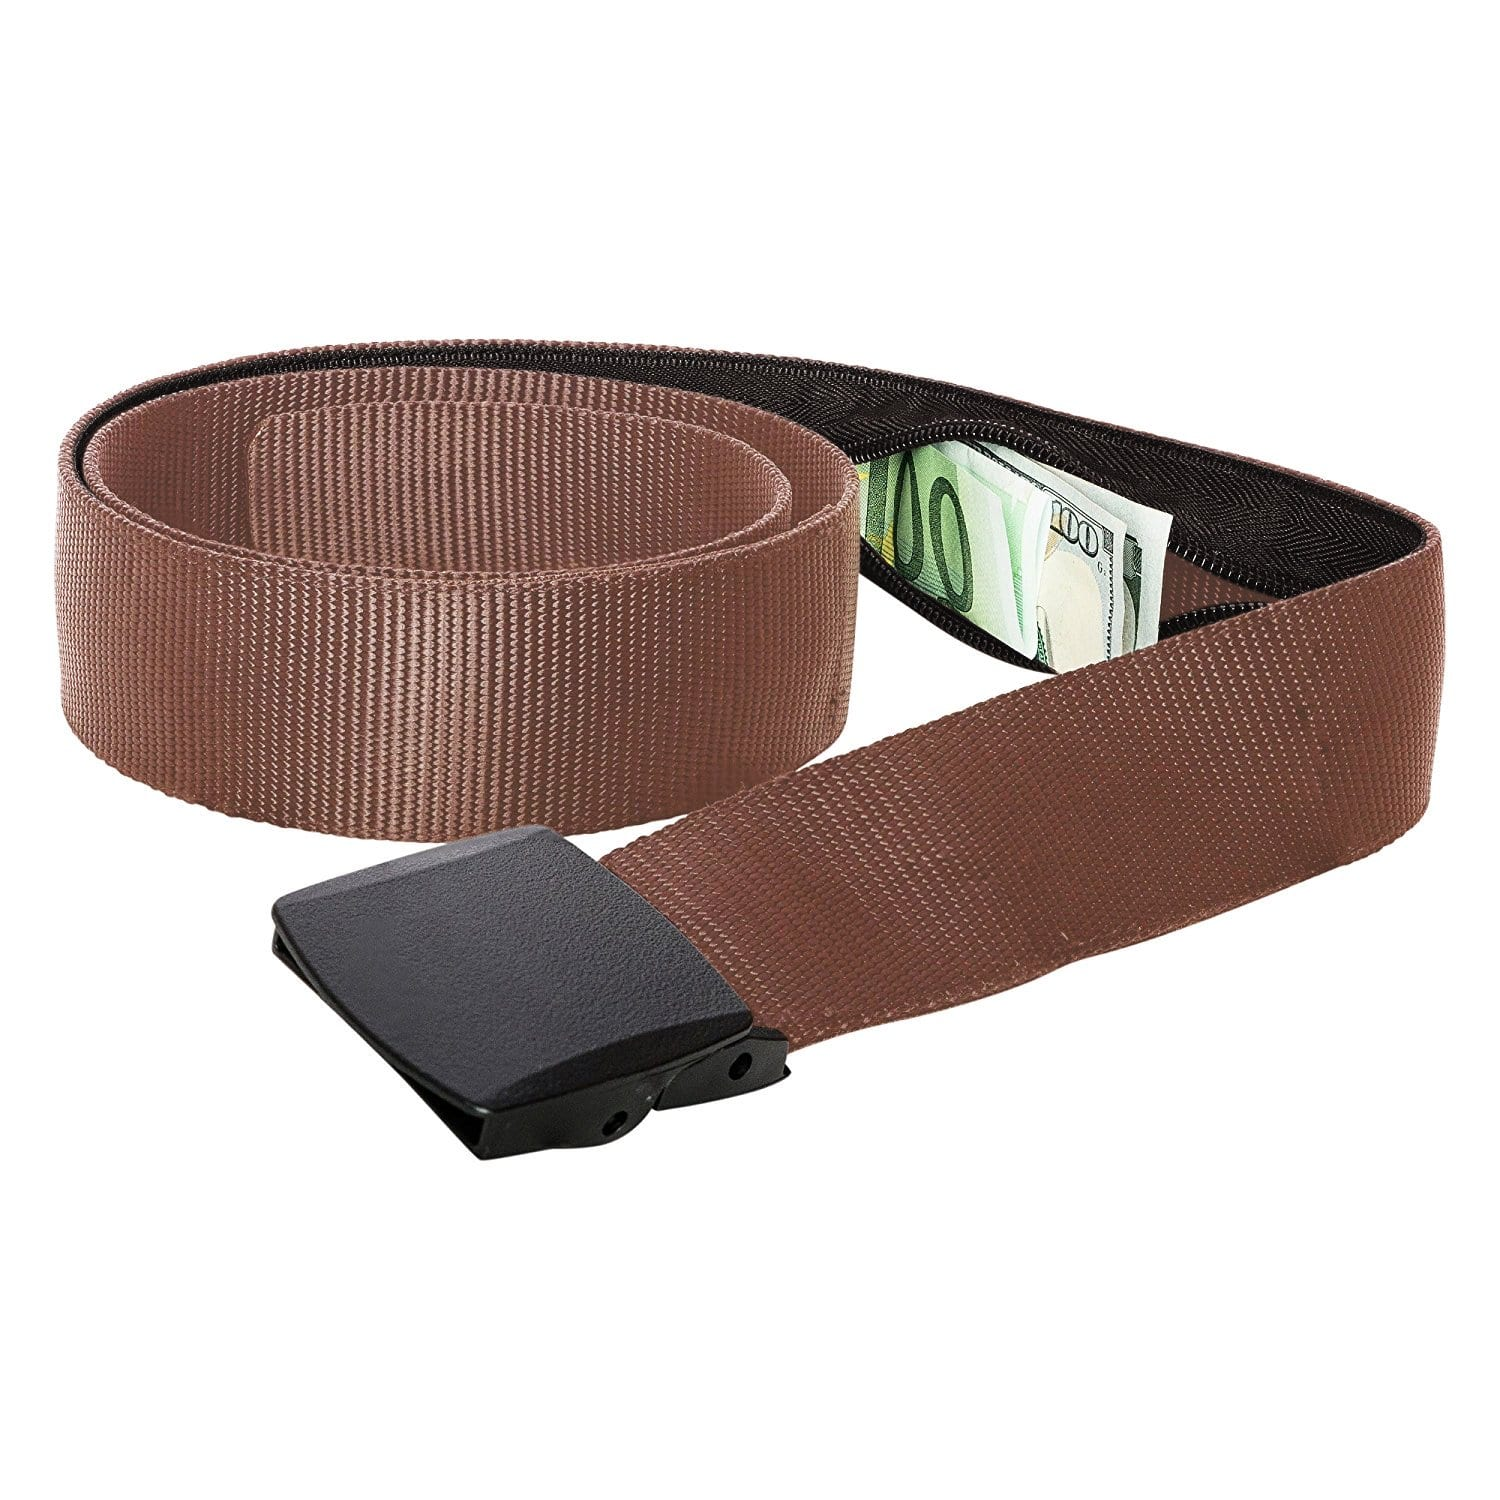 Amazon: Zero Grid Travel Security Belt - Hidden Money Pouch - Non-Metal Buckle $8.99 after coupon